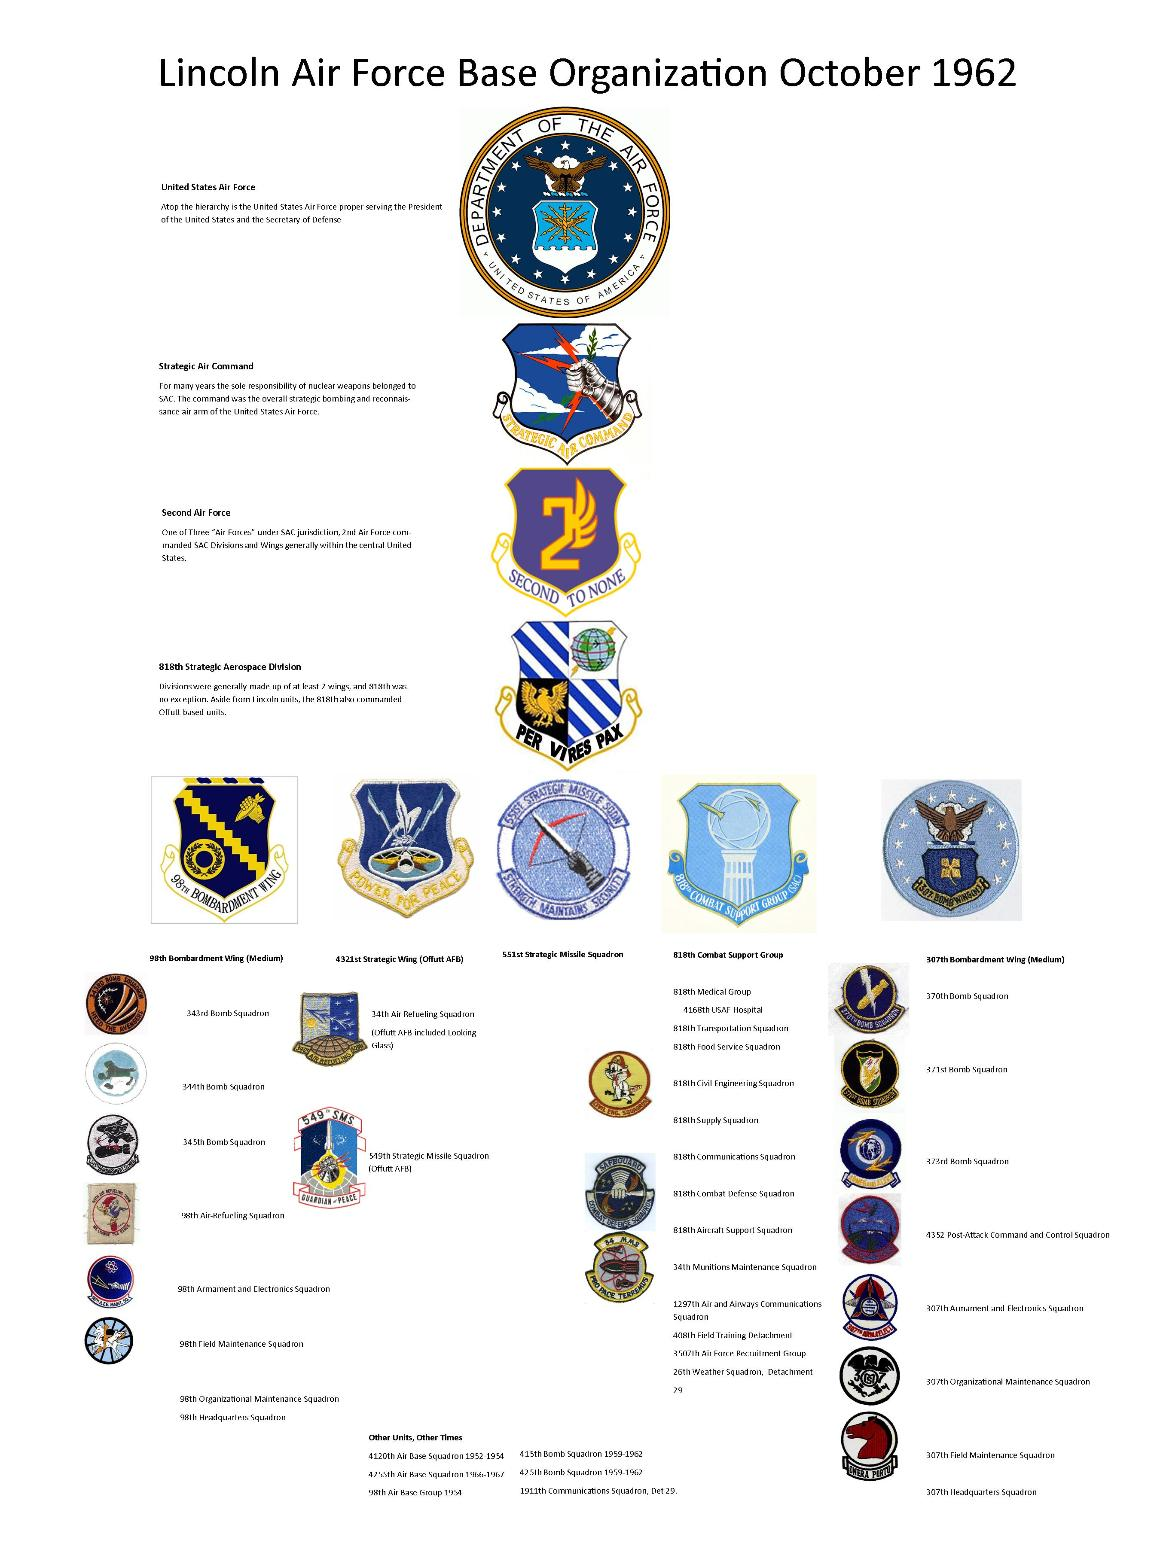 organizational structures and air force recruiting The department of the air force (daf) is one of the three military departments  within the  air force recruiting service, afrs, randolph air force base, san  antonio,  organizational structure and hierarchy of the united states air force .